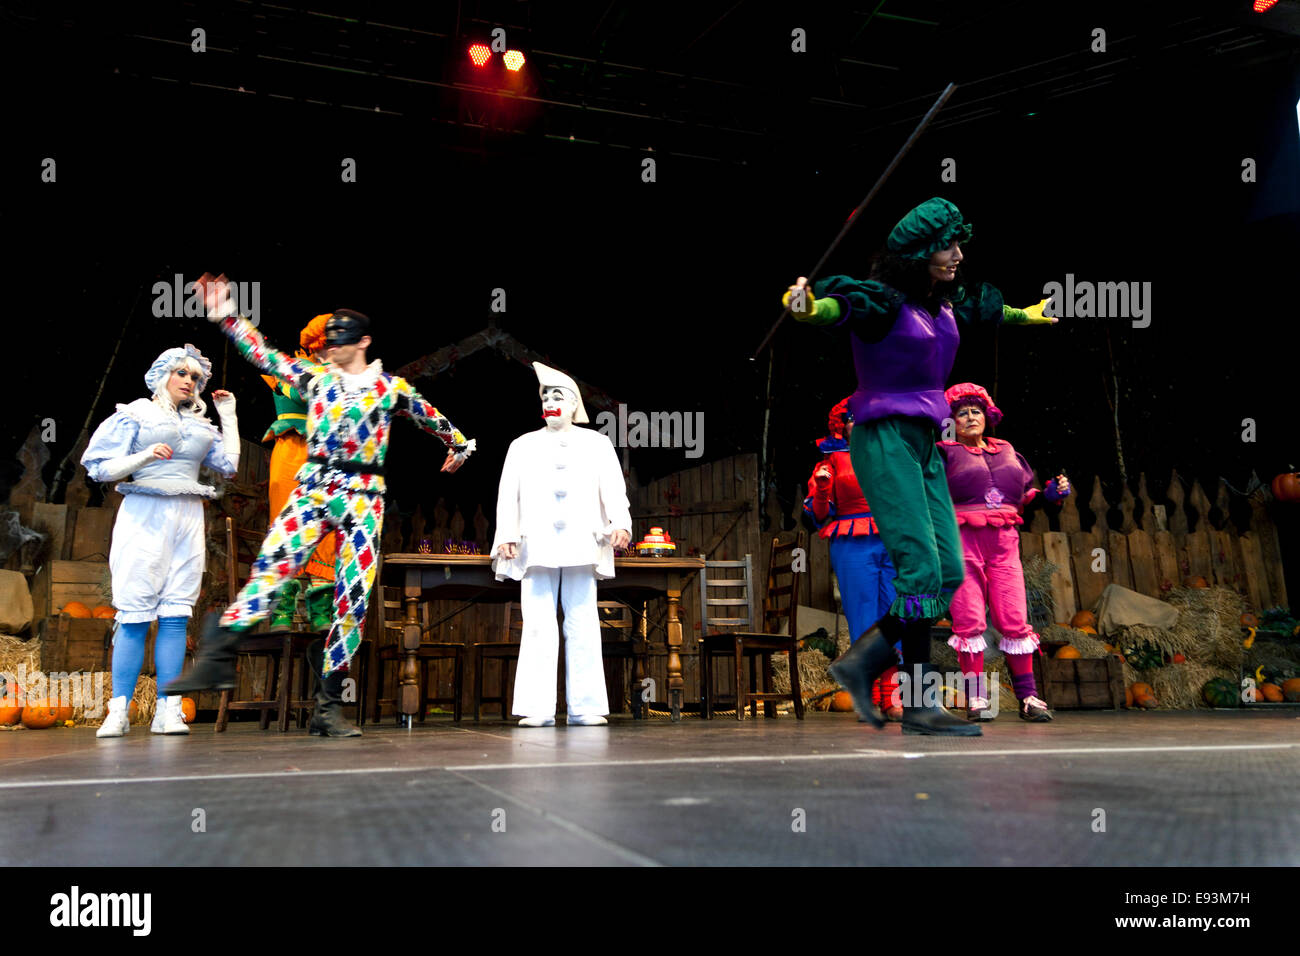 Halloween Dressed Tivoli Copenhagen High Resolution Stock Photography And Images Alamy